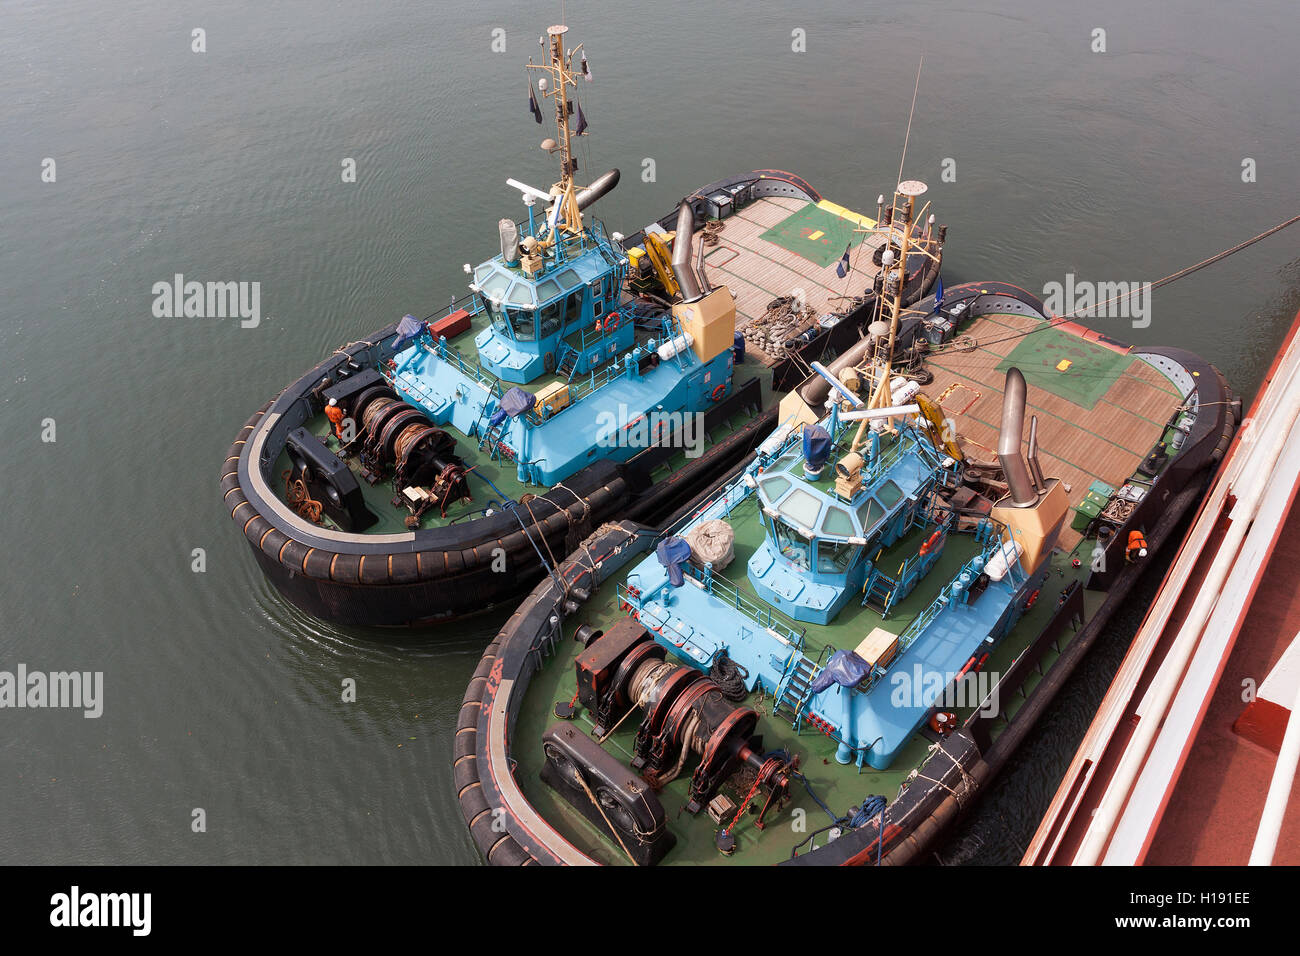 Marine and port operations from jetty.Two tugs tied up and waiting for cargo boat to sail so they can move and guide - Stock Image